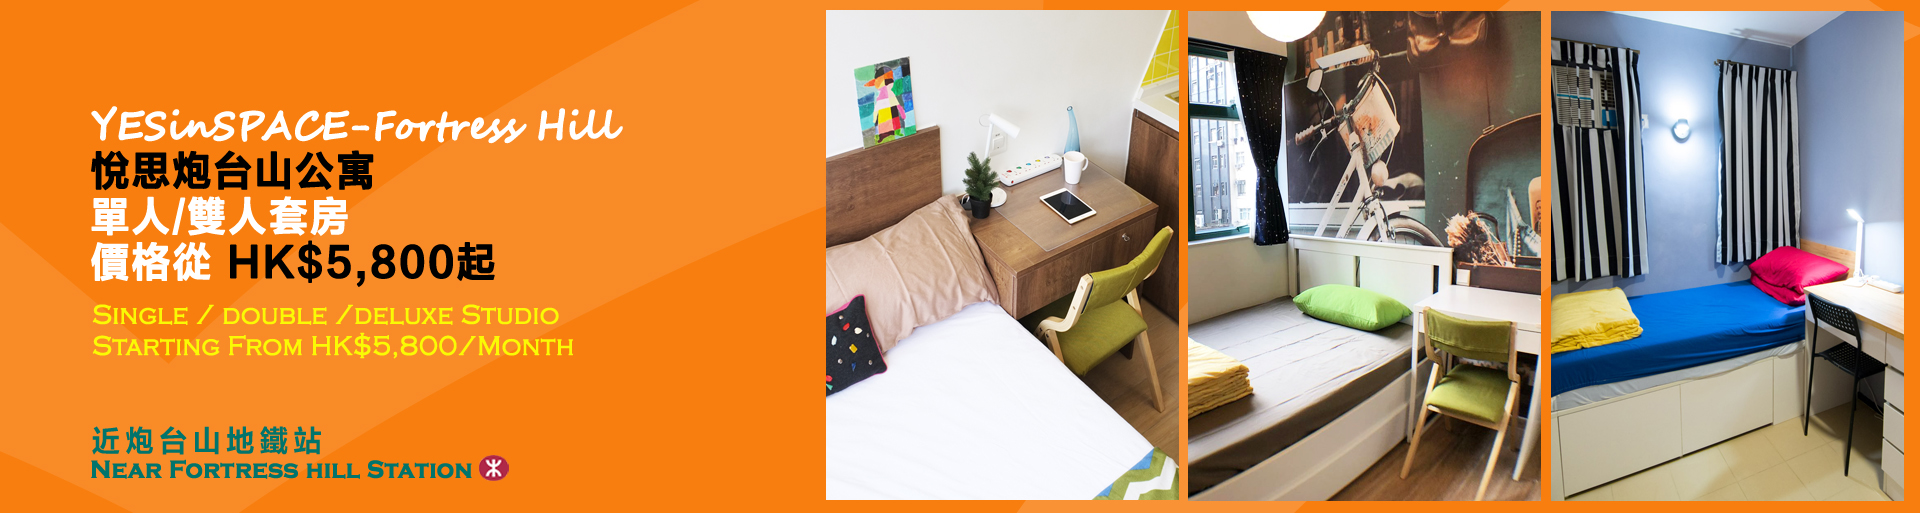 YESinSPACE -Fortress Hill Serviced Apartment